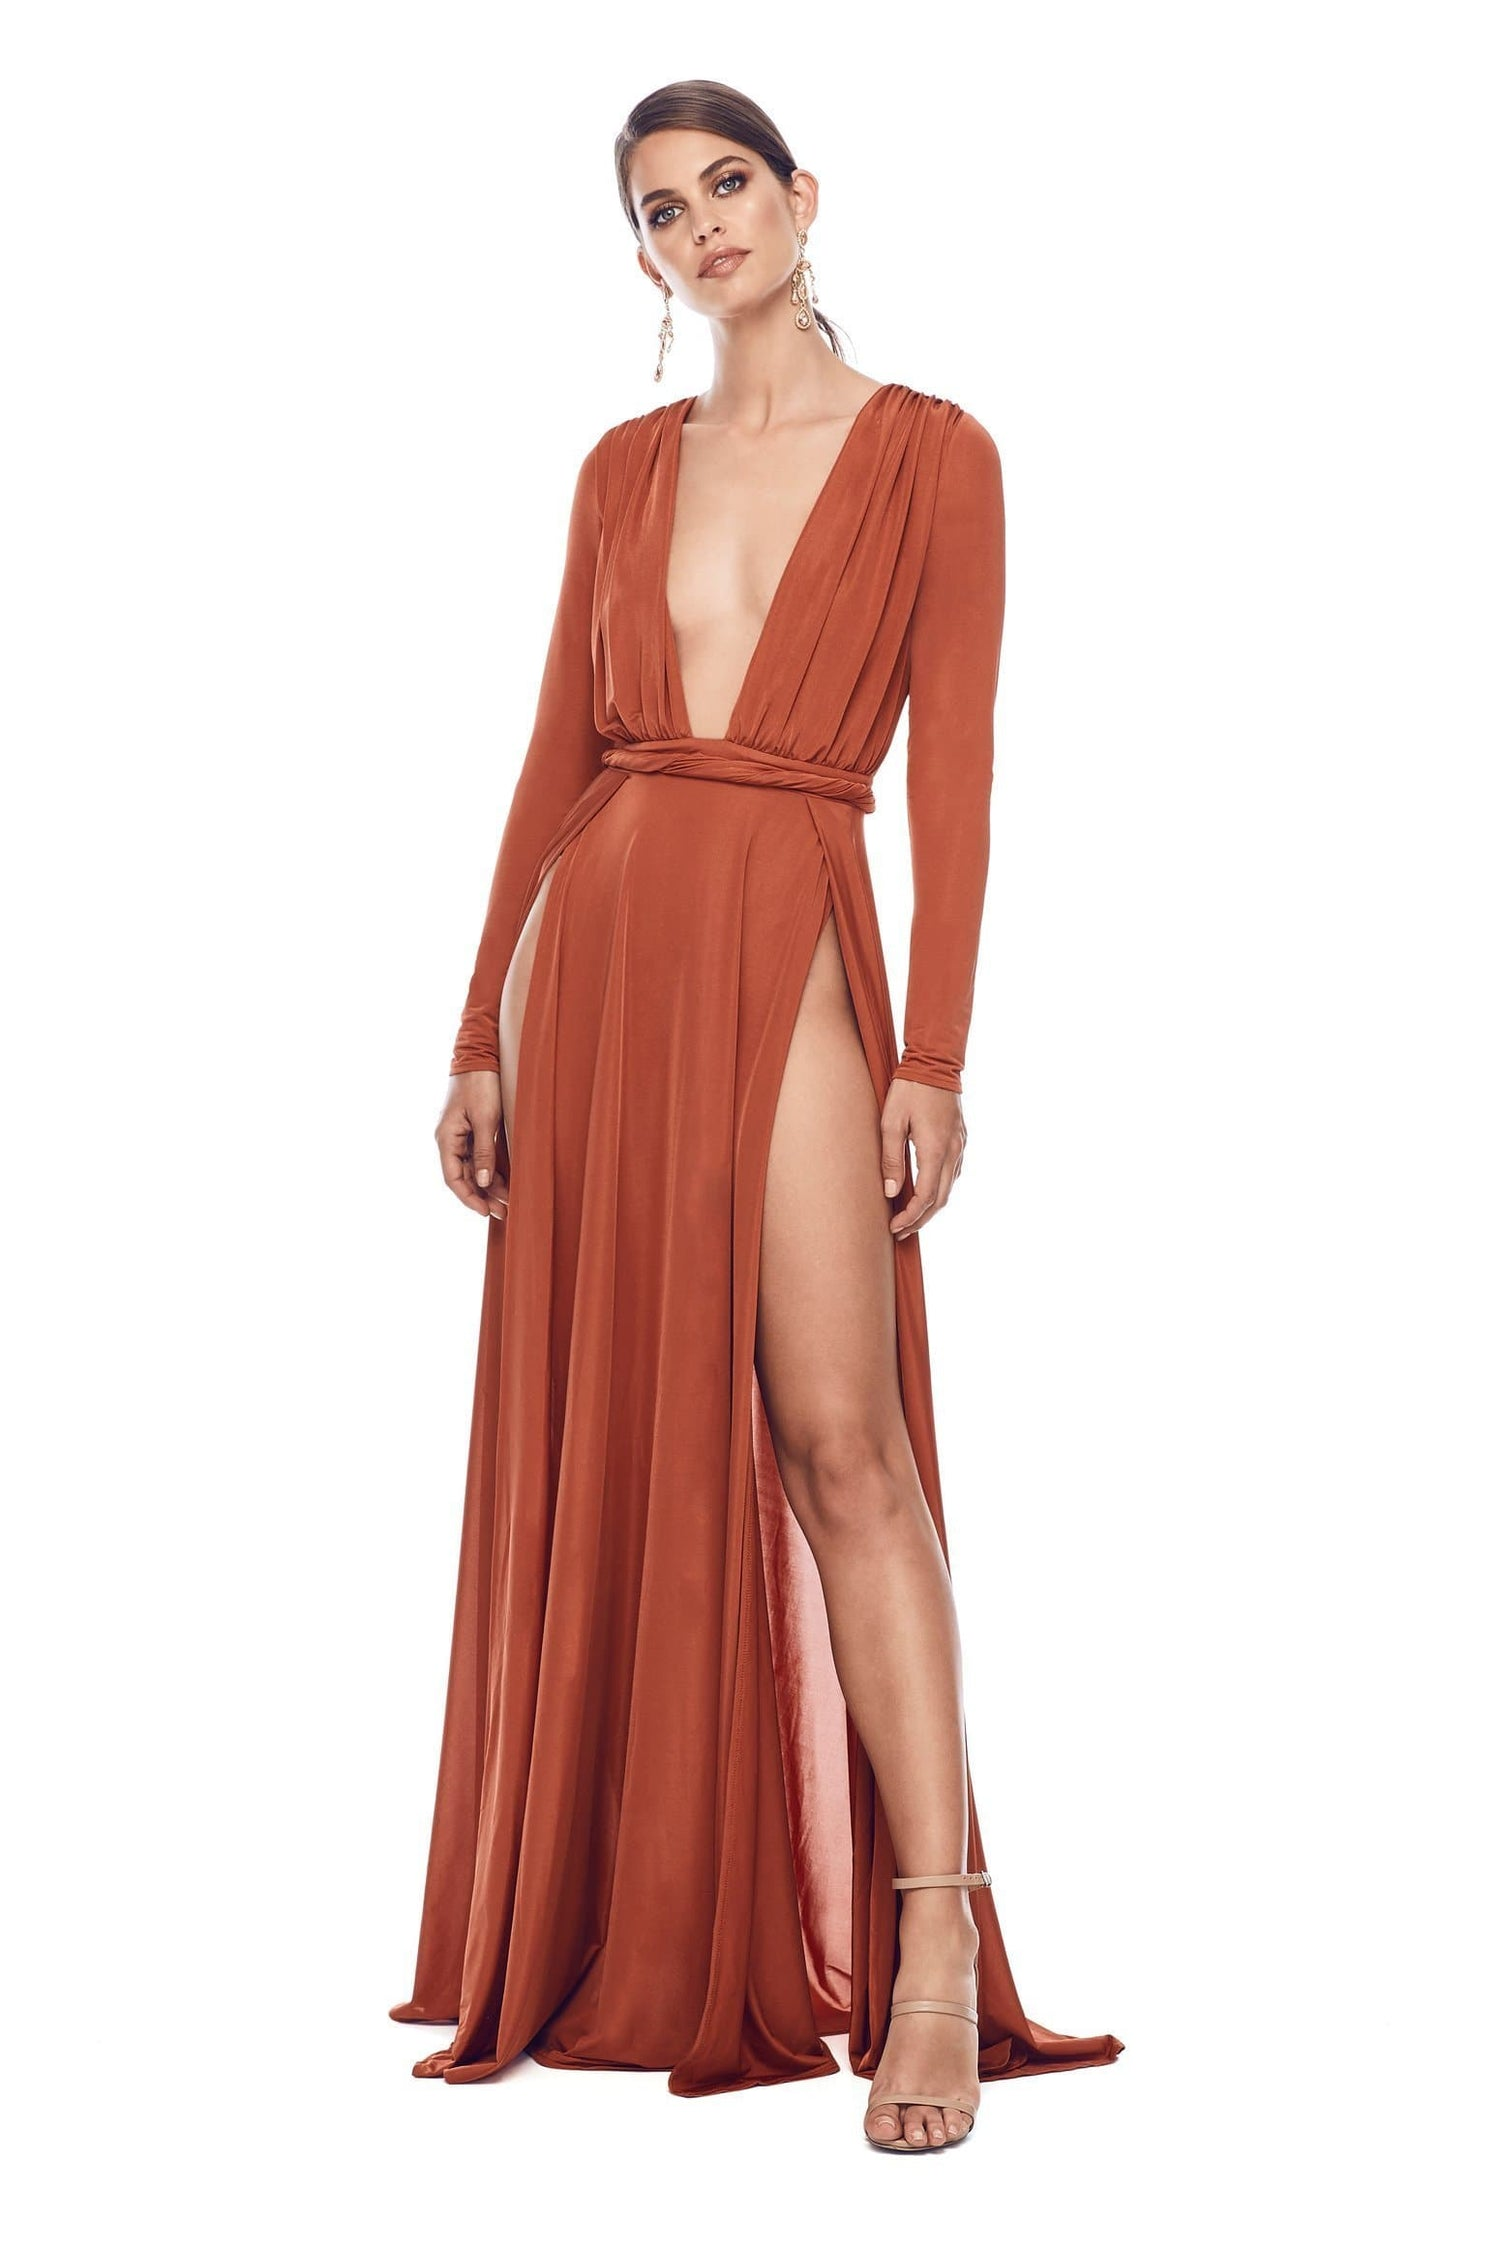 4508bbbb9f2c Sahara - Golden Rust Jersey Gown with Long Sleeves & Deep Plunge ...